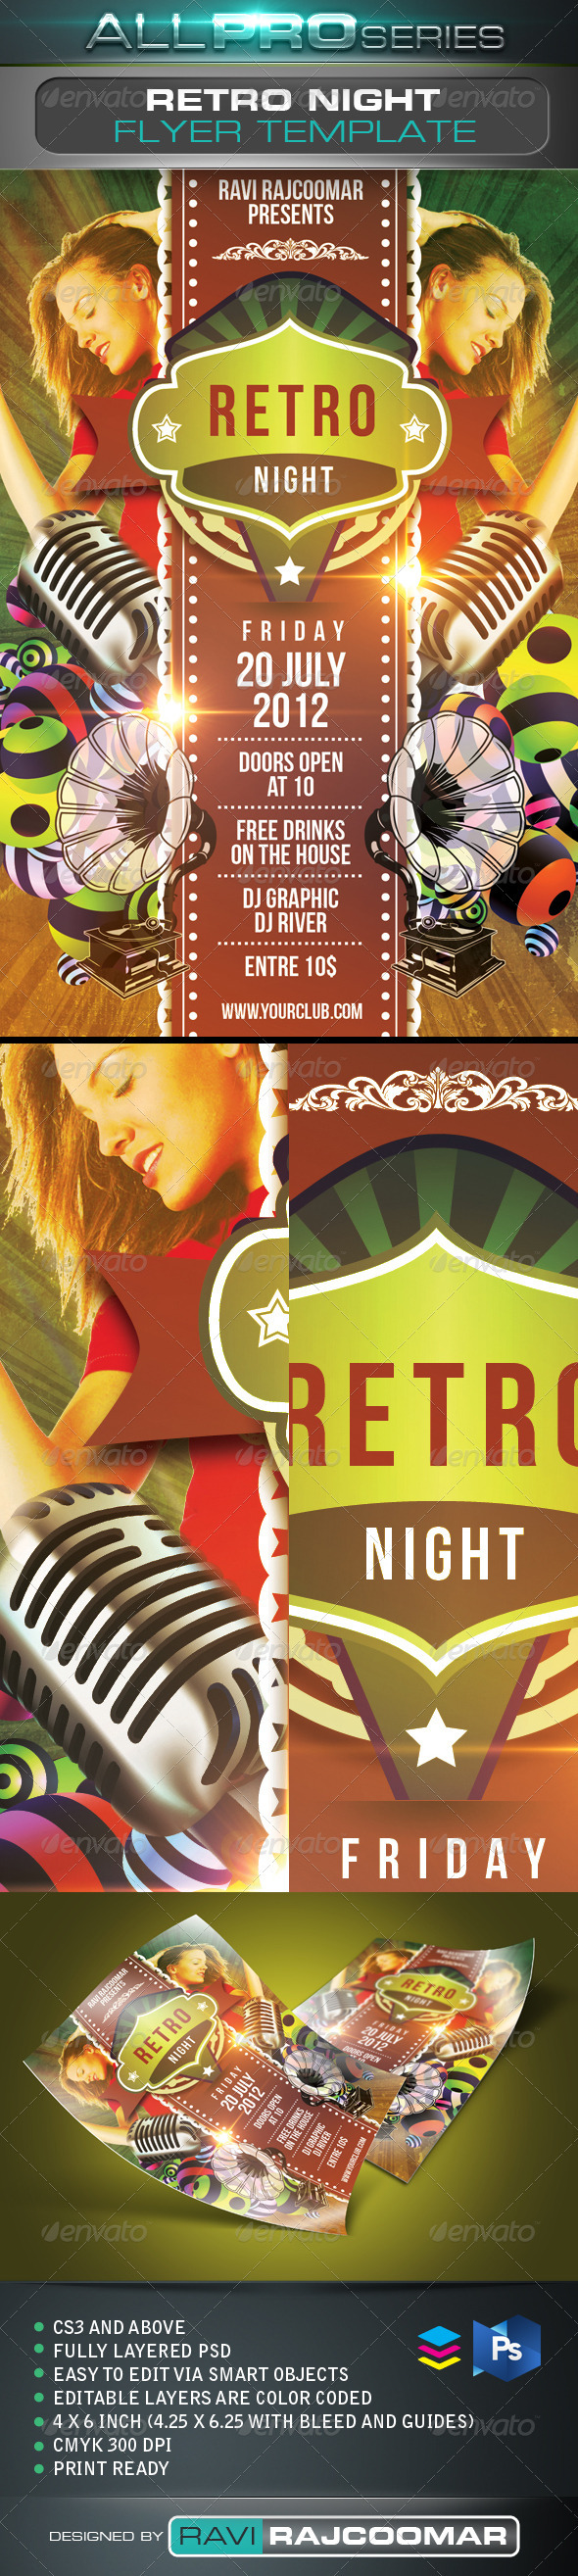 Retro Night Flyer Template - Events Flyers